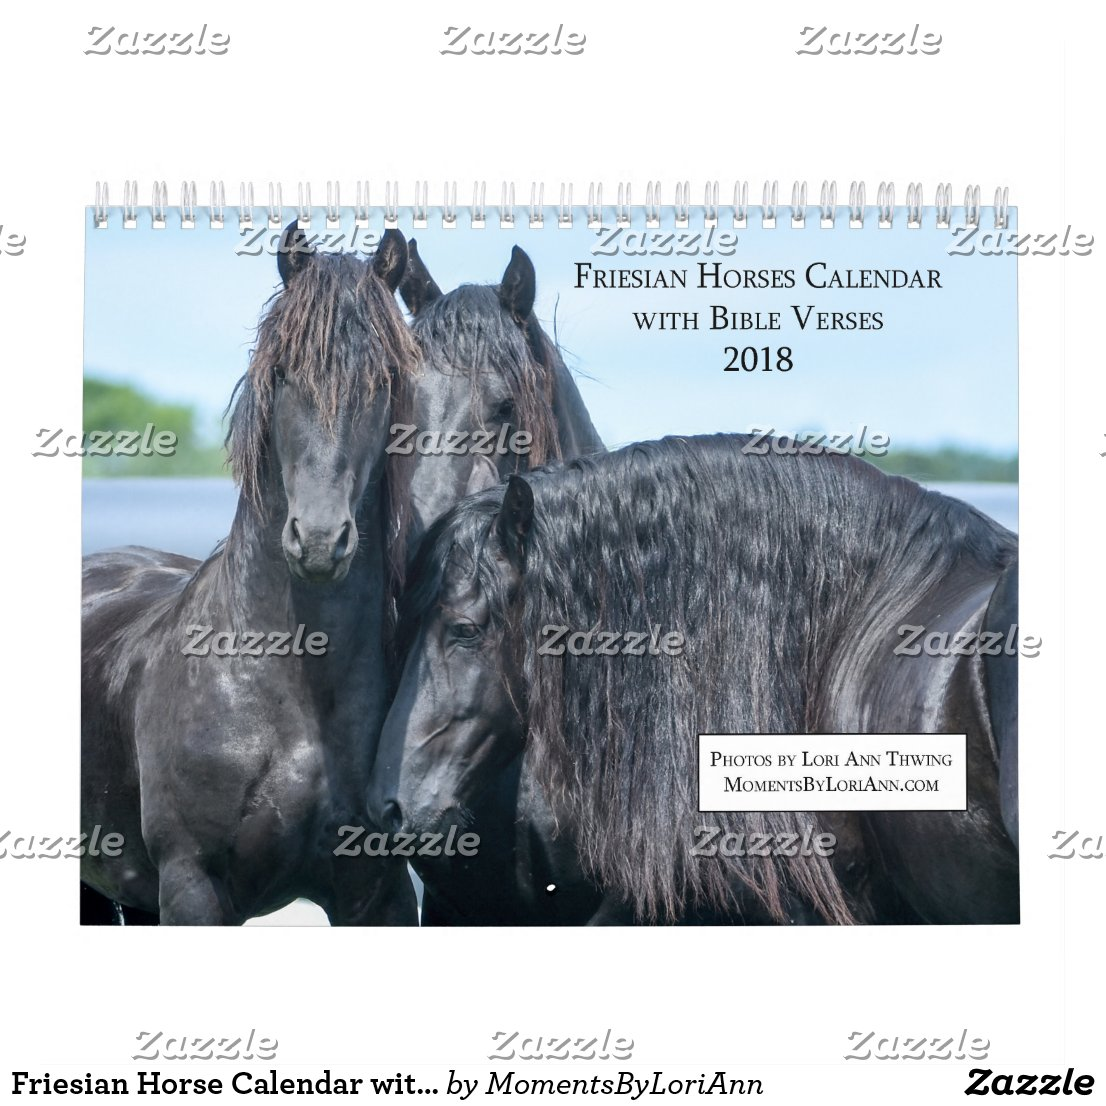 Friesian Horse Calendar with Bible Verses